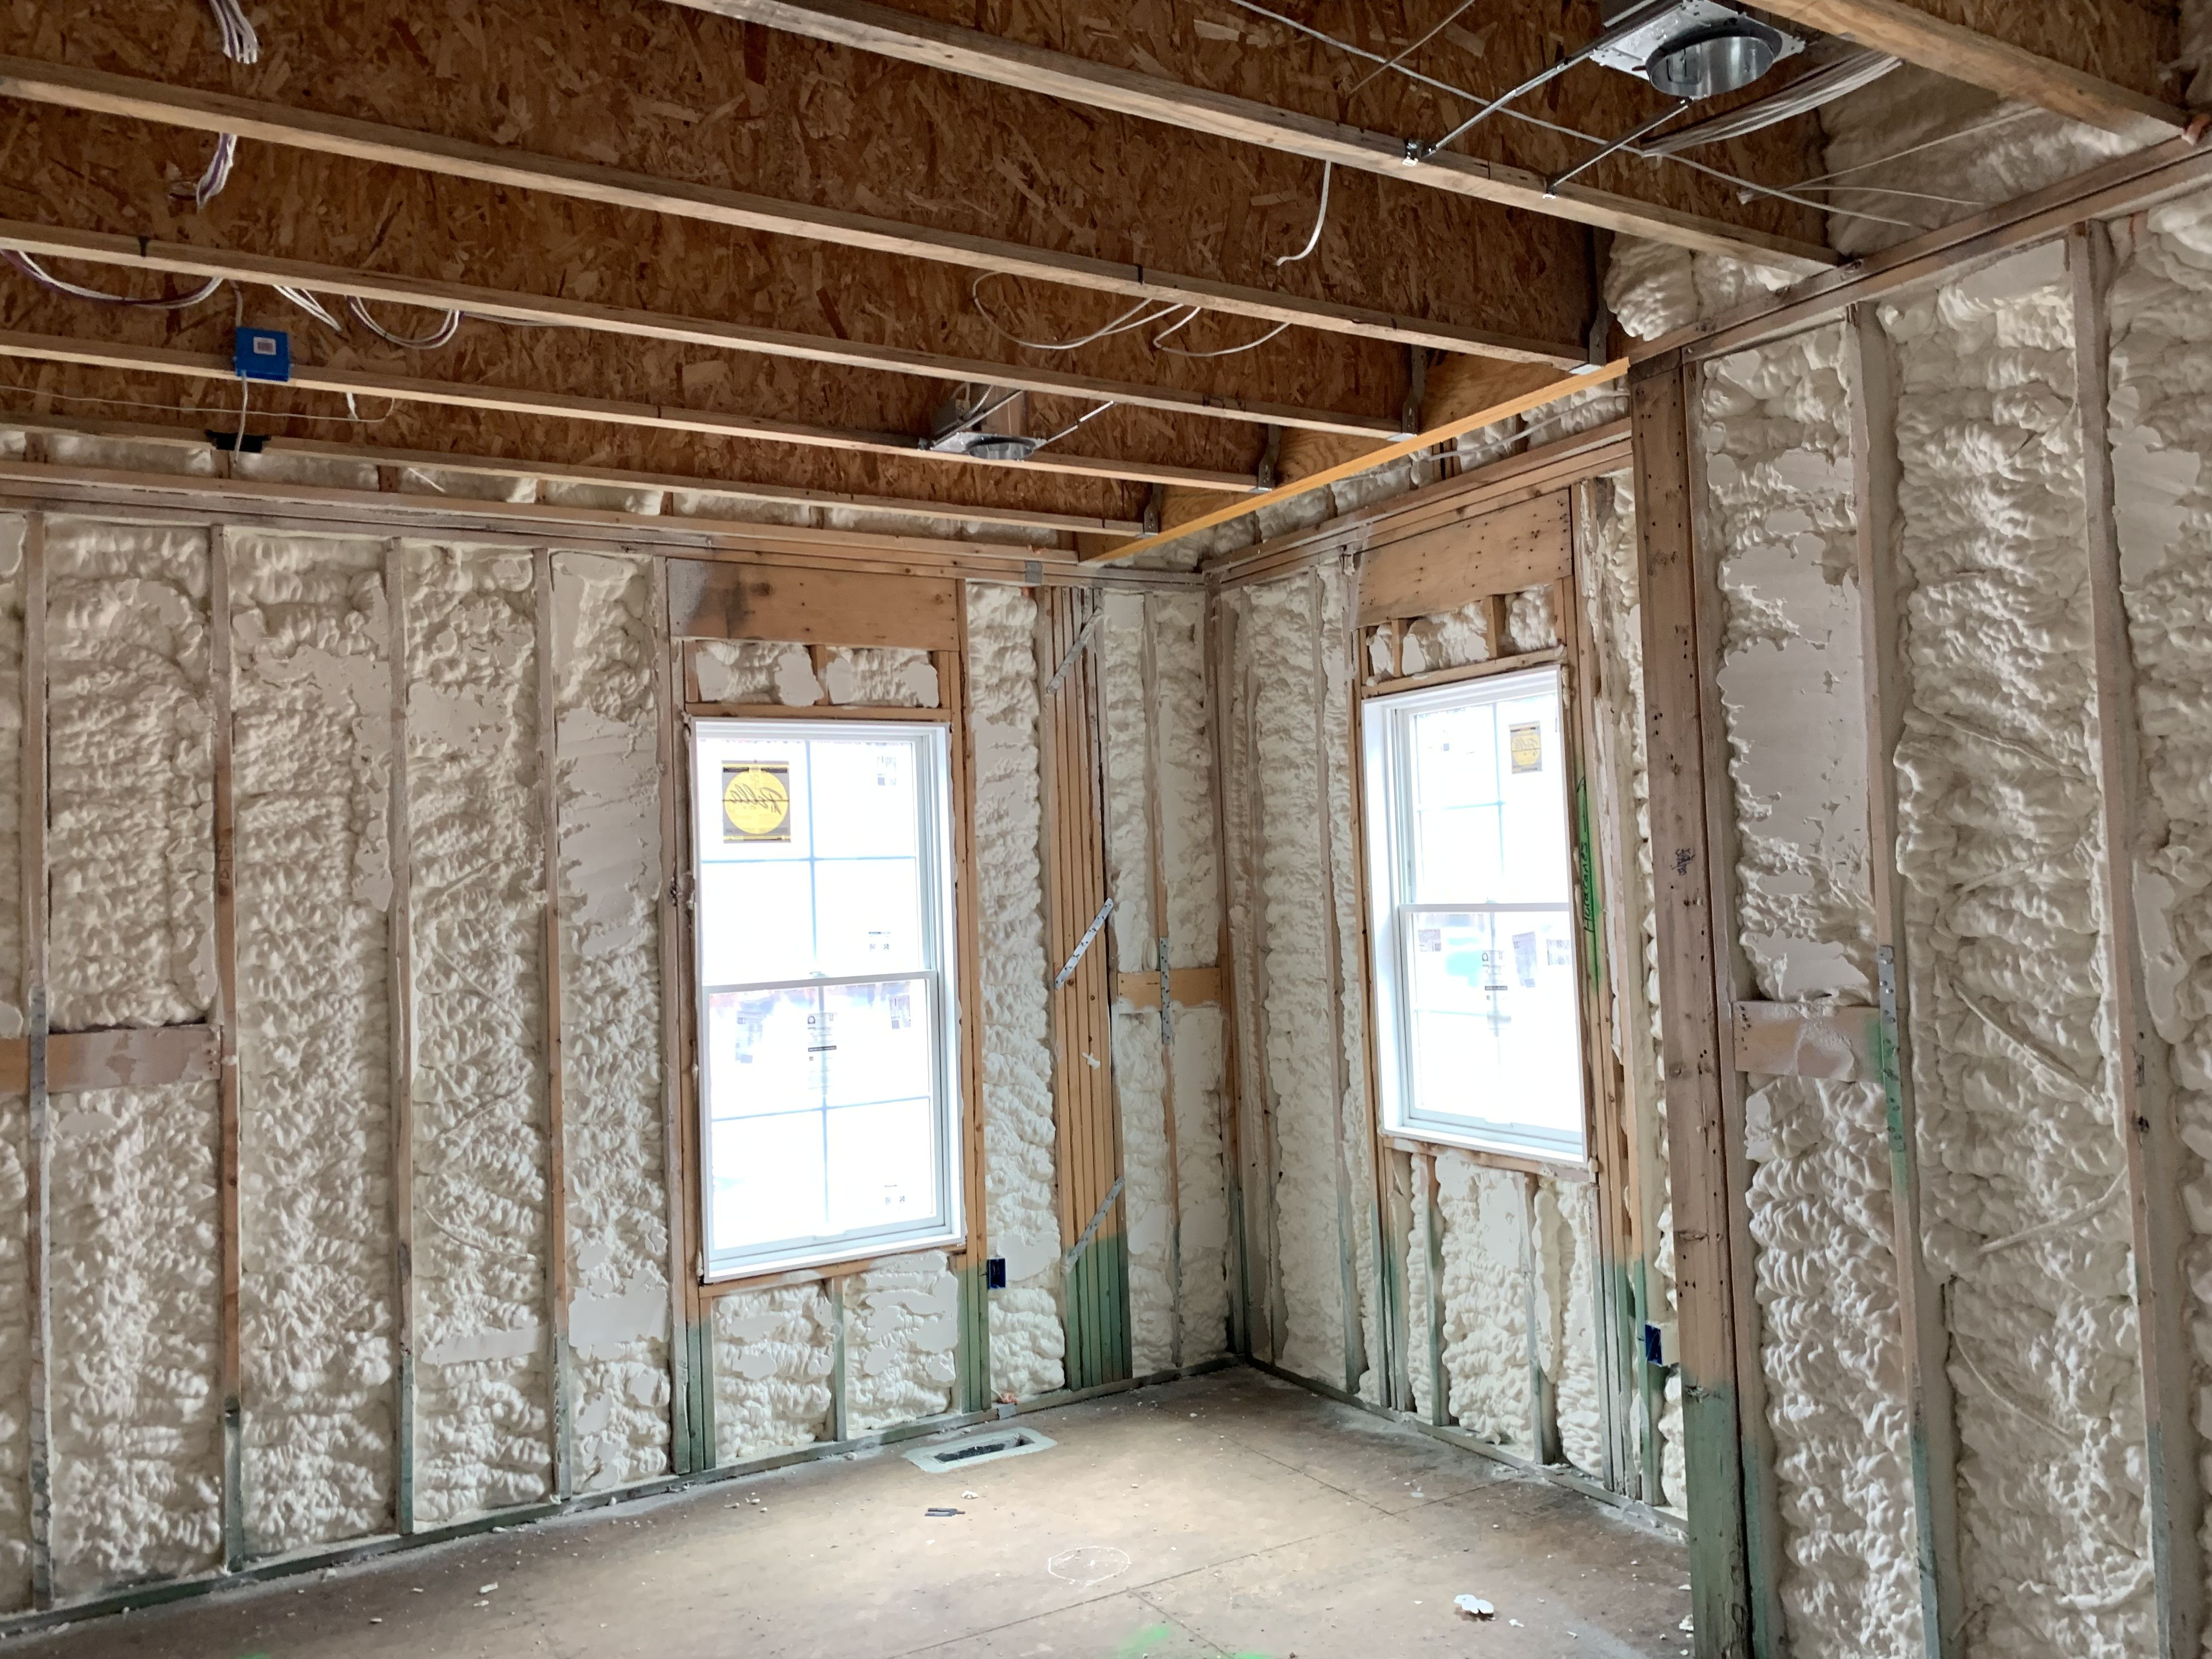 Open Cell Spray Foam Insulation Averaging 5 Inches On The Exterior